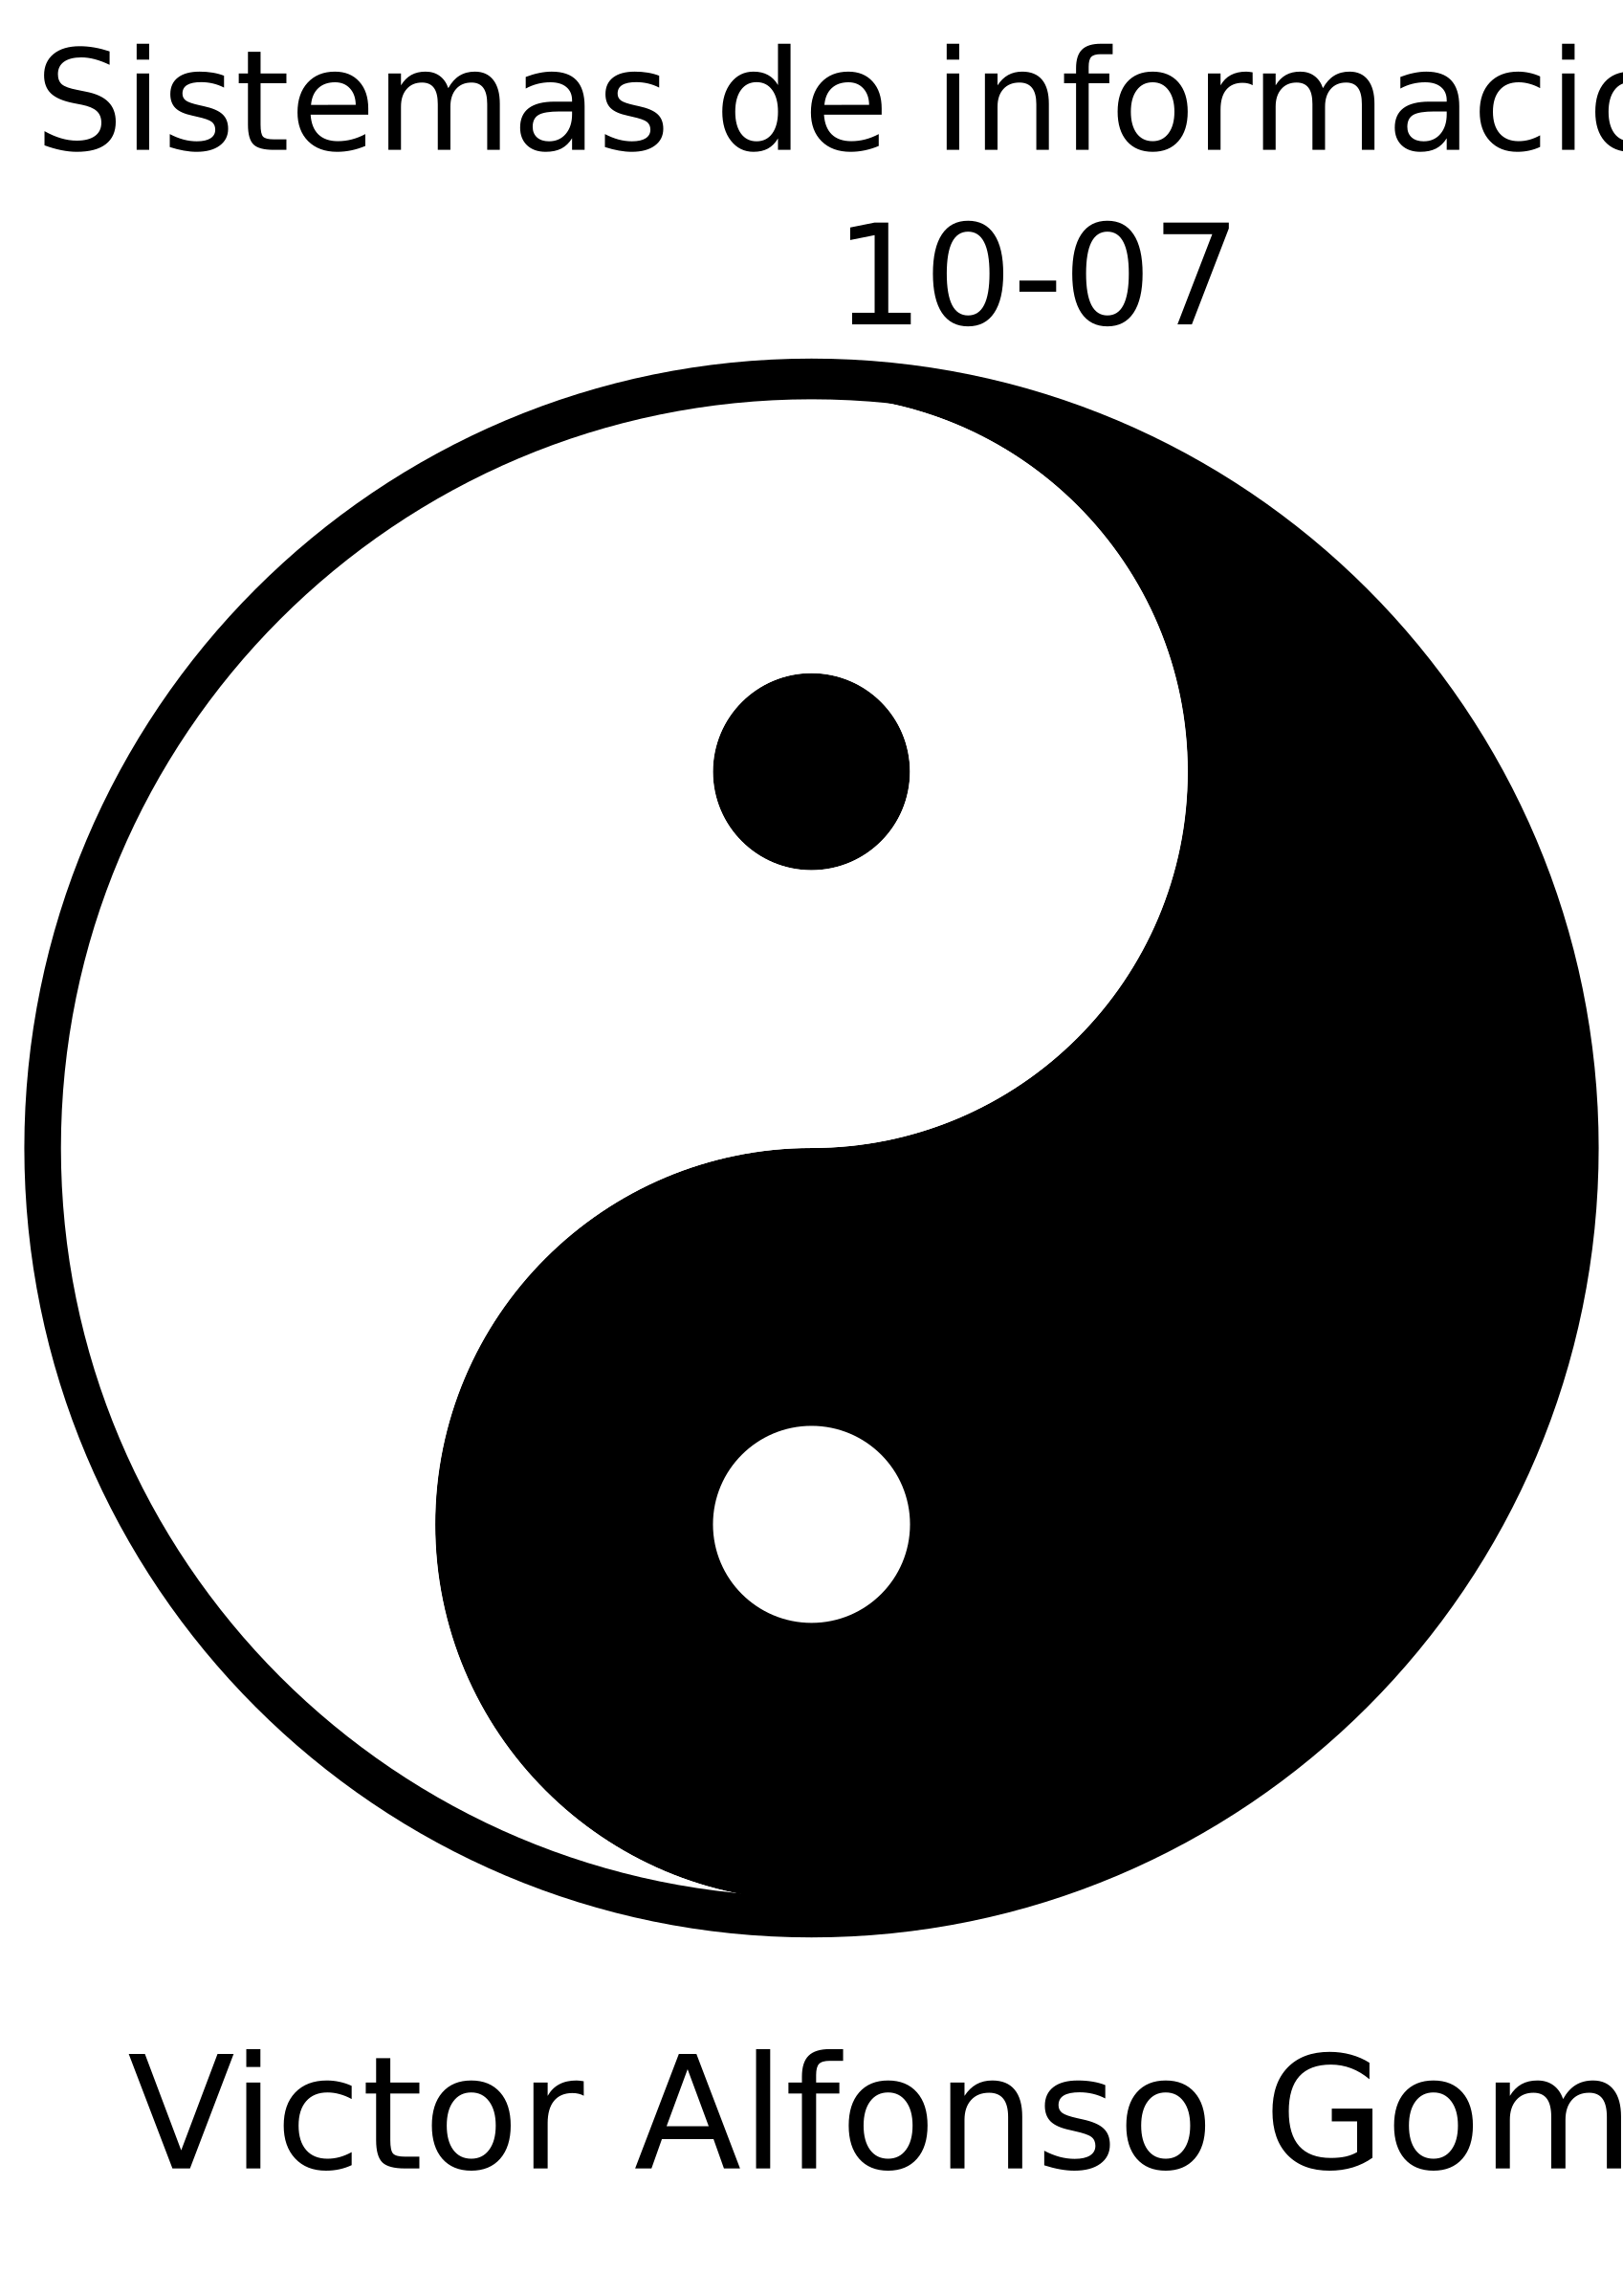 YIN YANG by VICTOR.GOMEZ